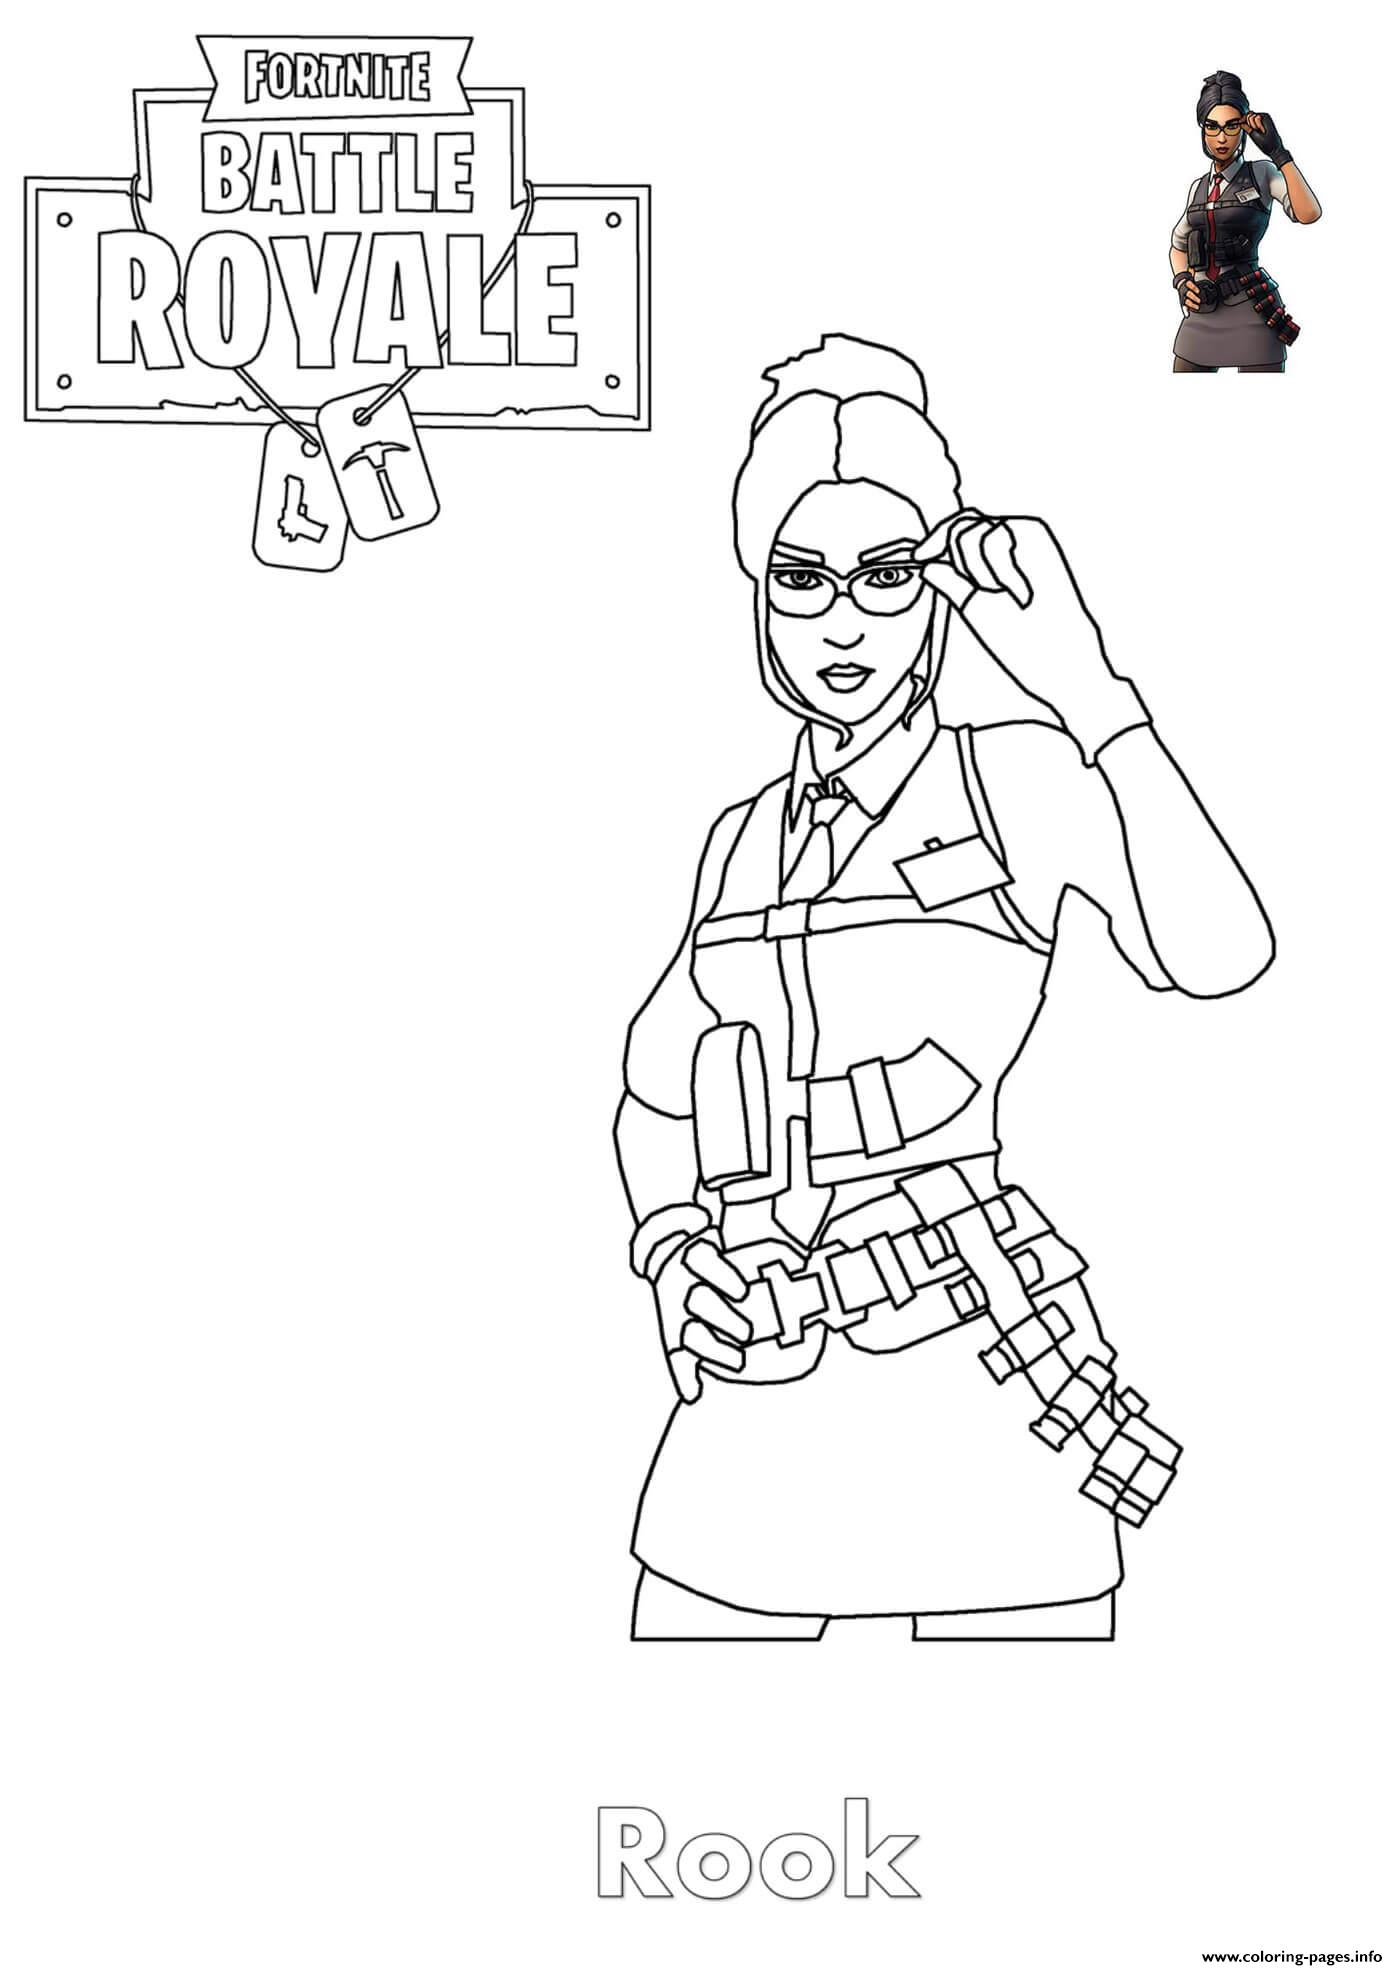 Rook Fortnite Girl Coloring Pages Printable